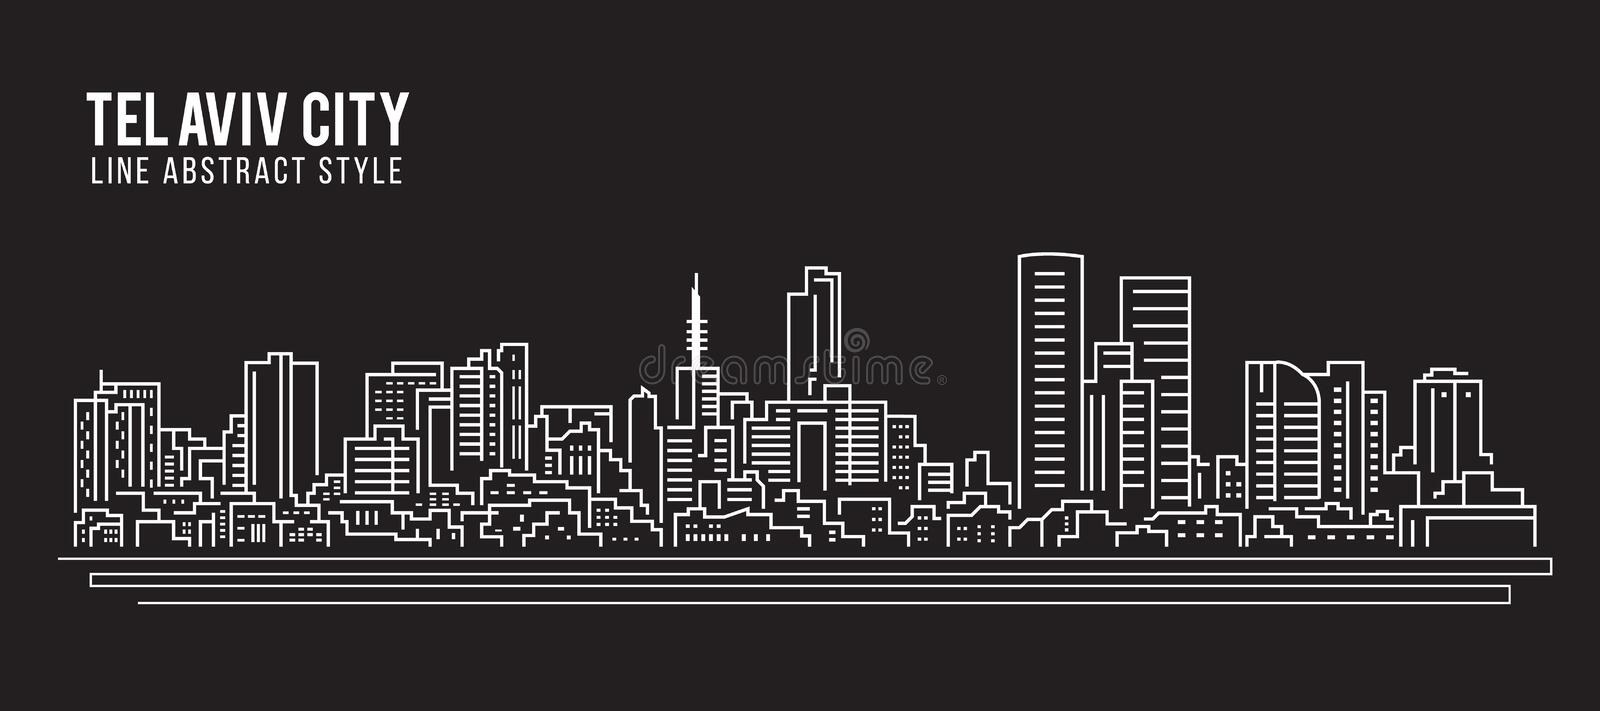 Cityscape Building Line art Vector Illustration design - Tel Aviv city stock illustration